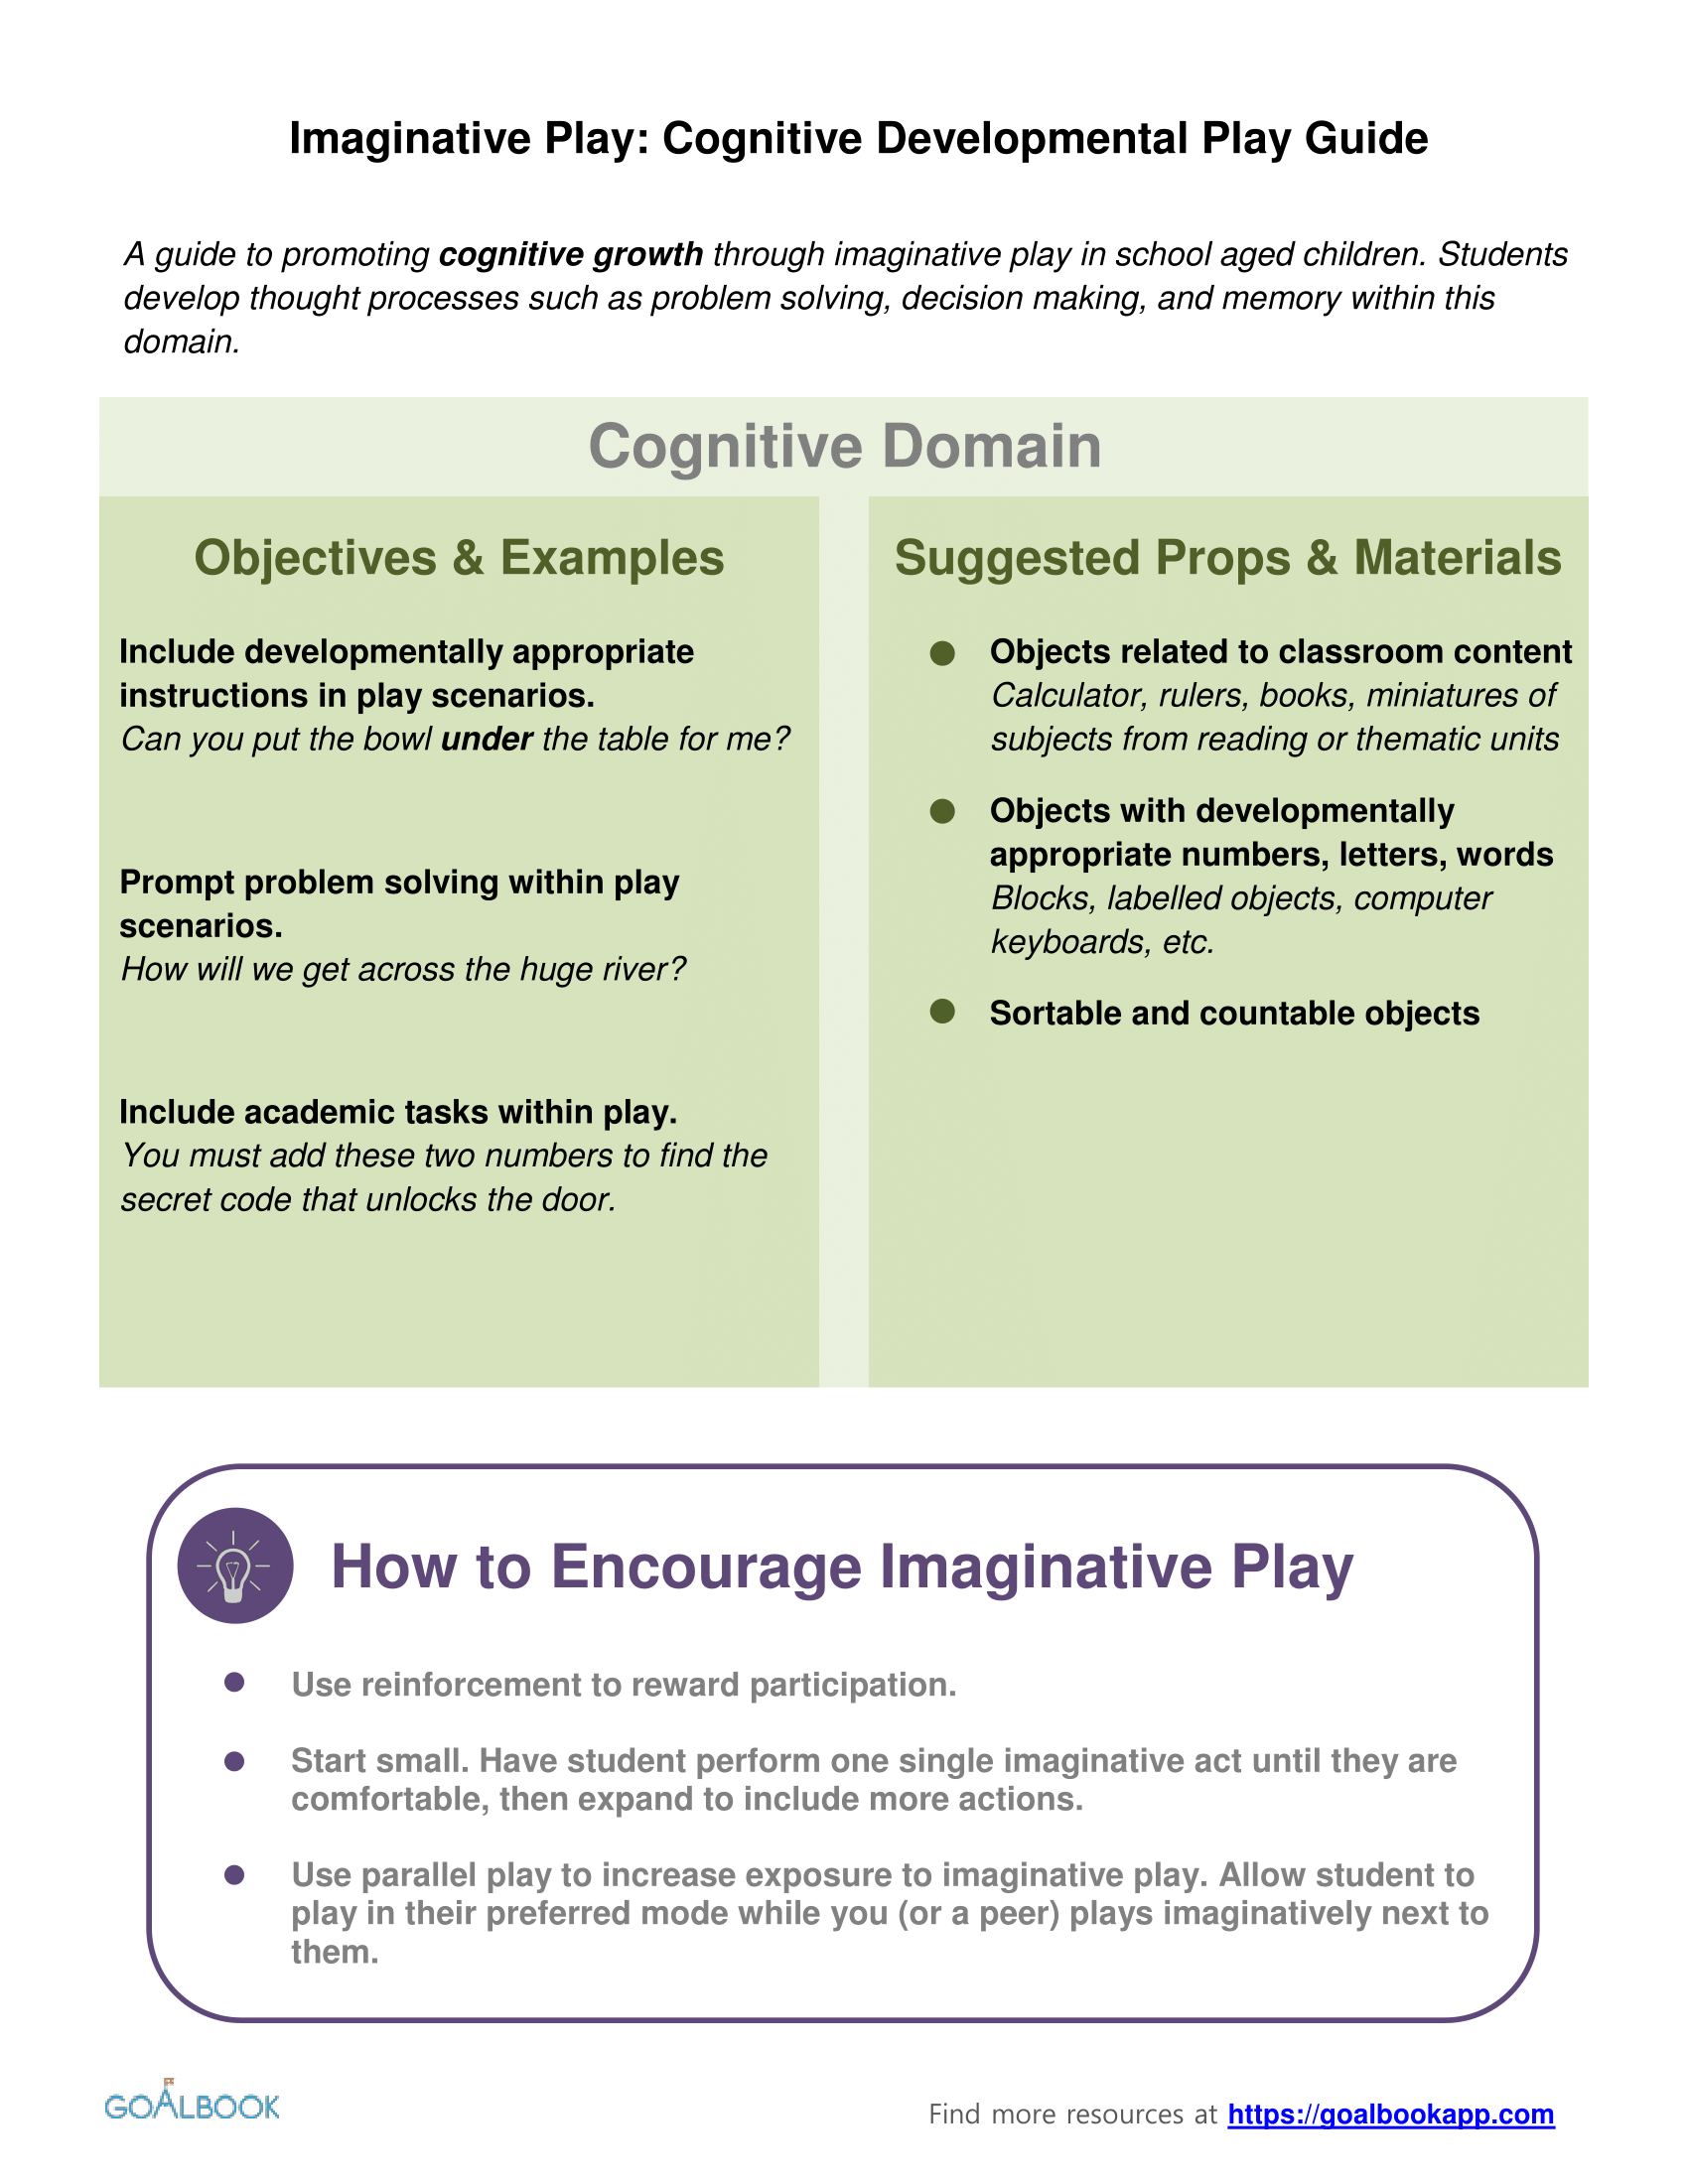 Cognitive Development Imaginative Play Guide